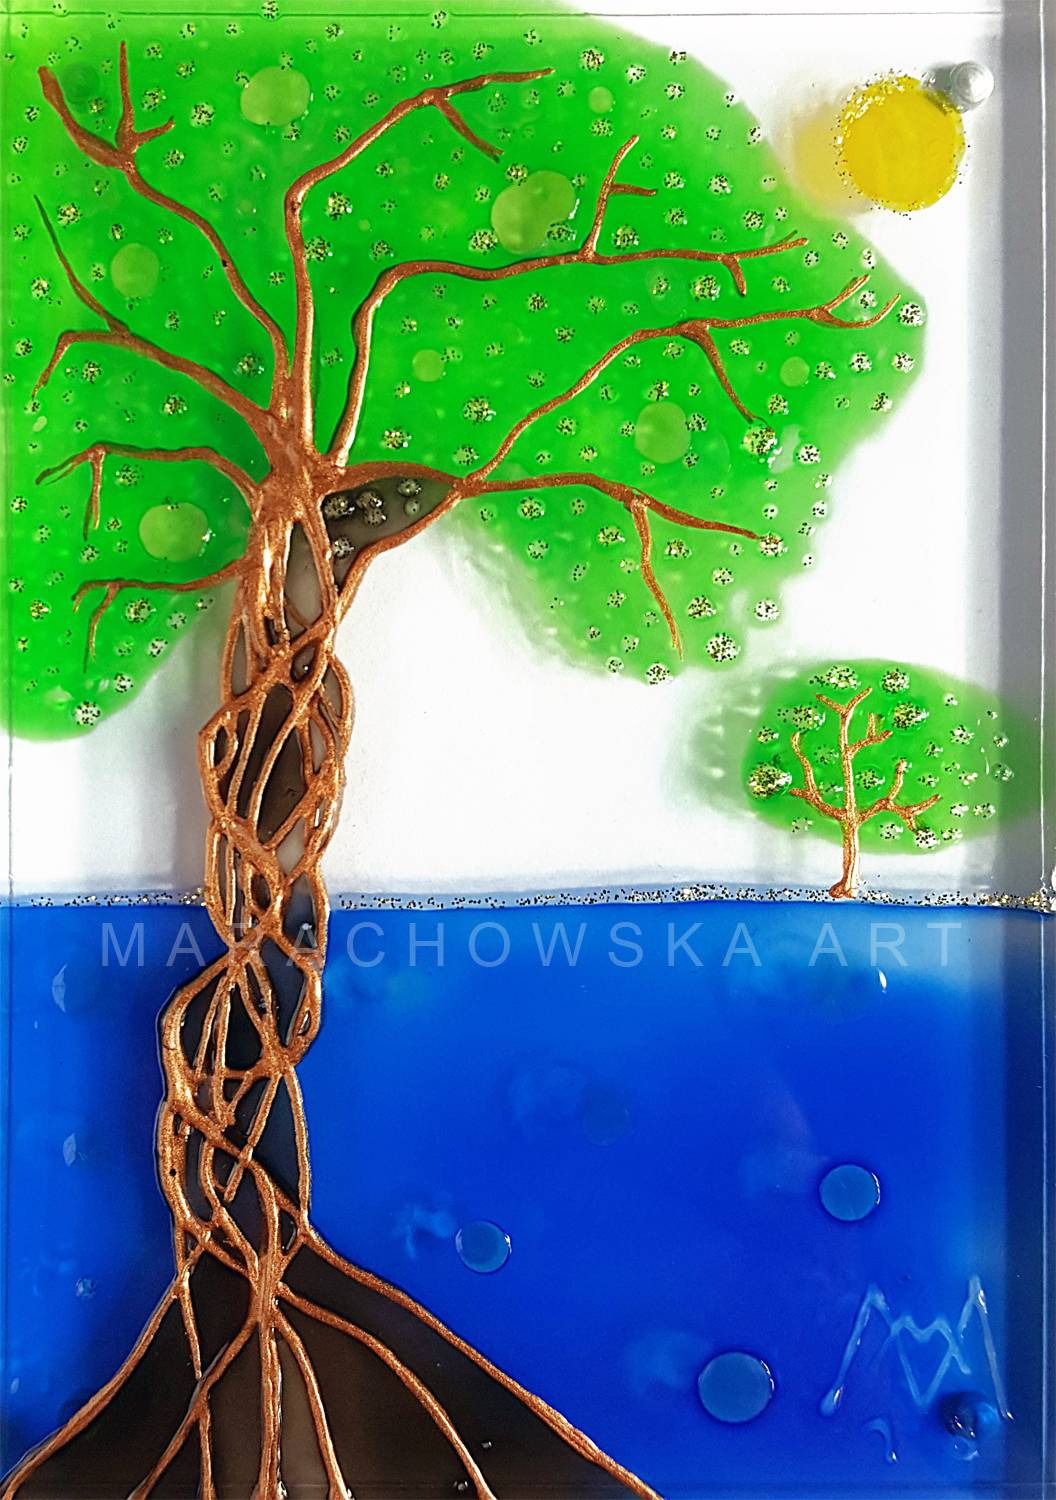 happytree-marachowska-art-paintzing-glass-2018-signatur